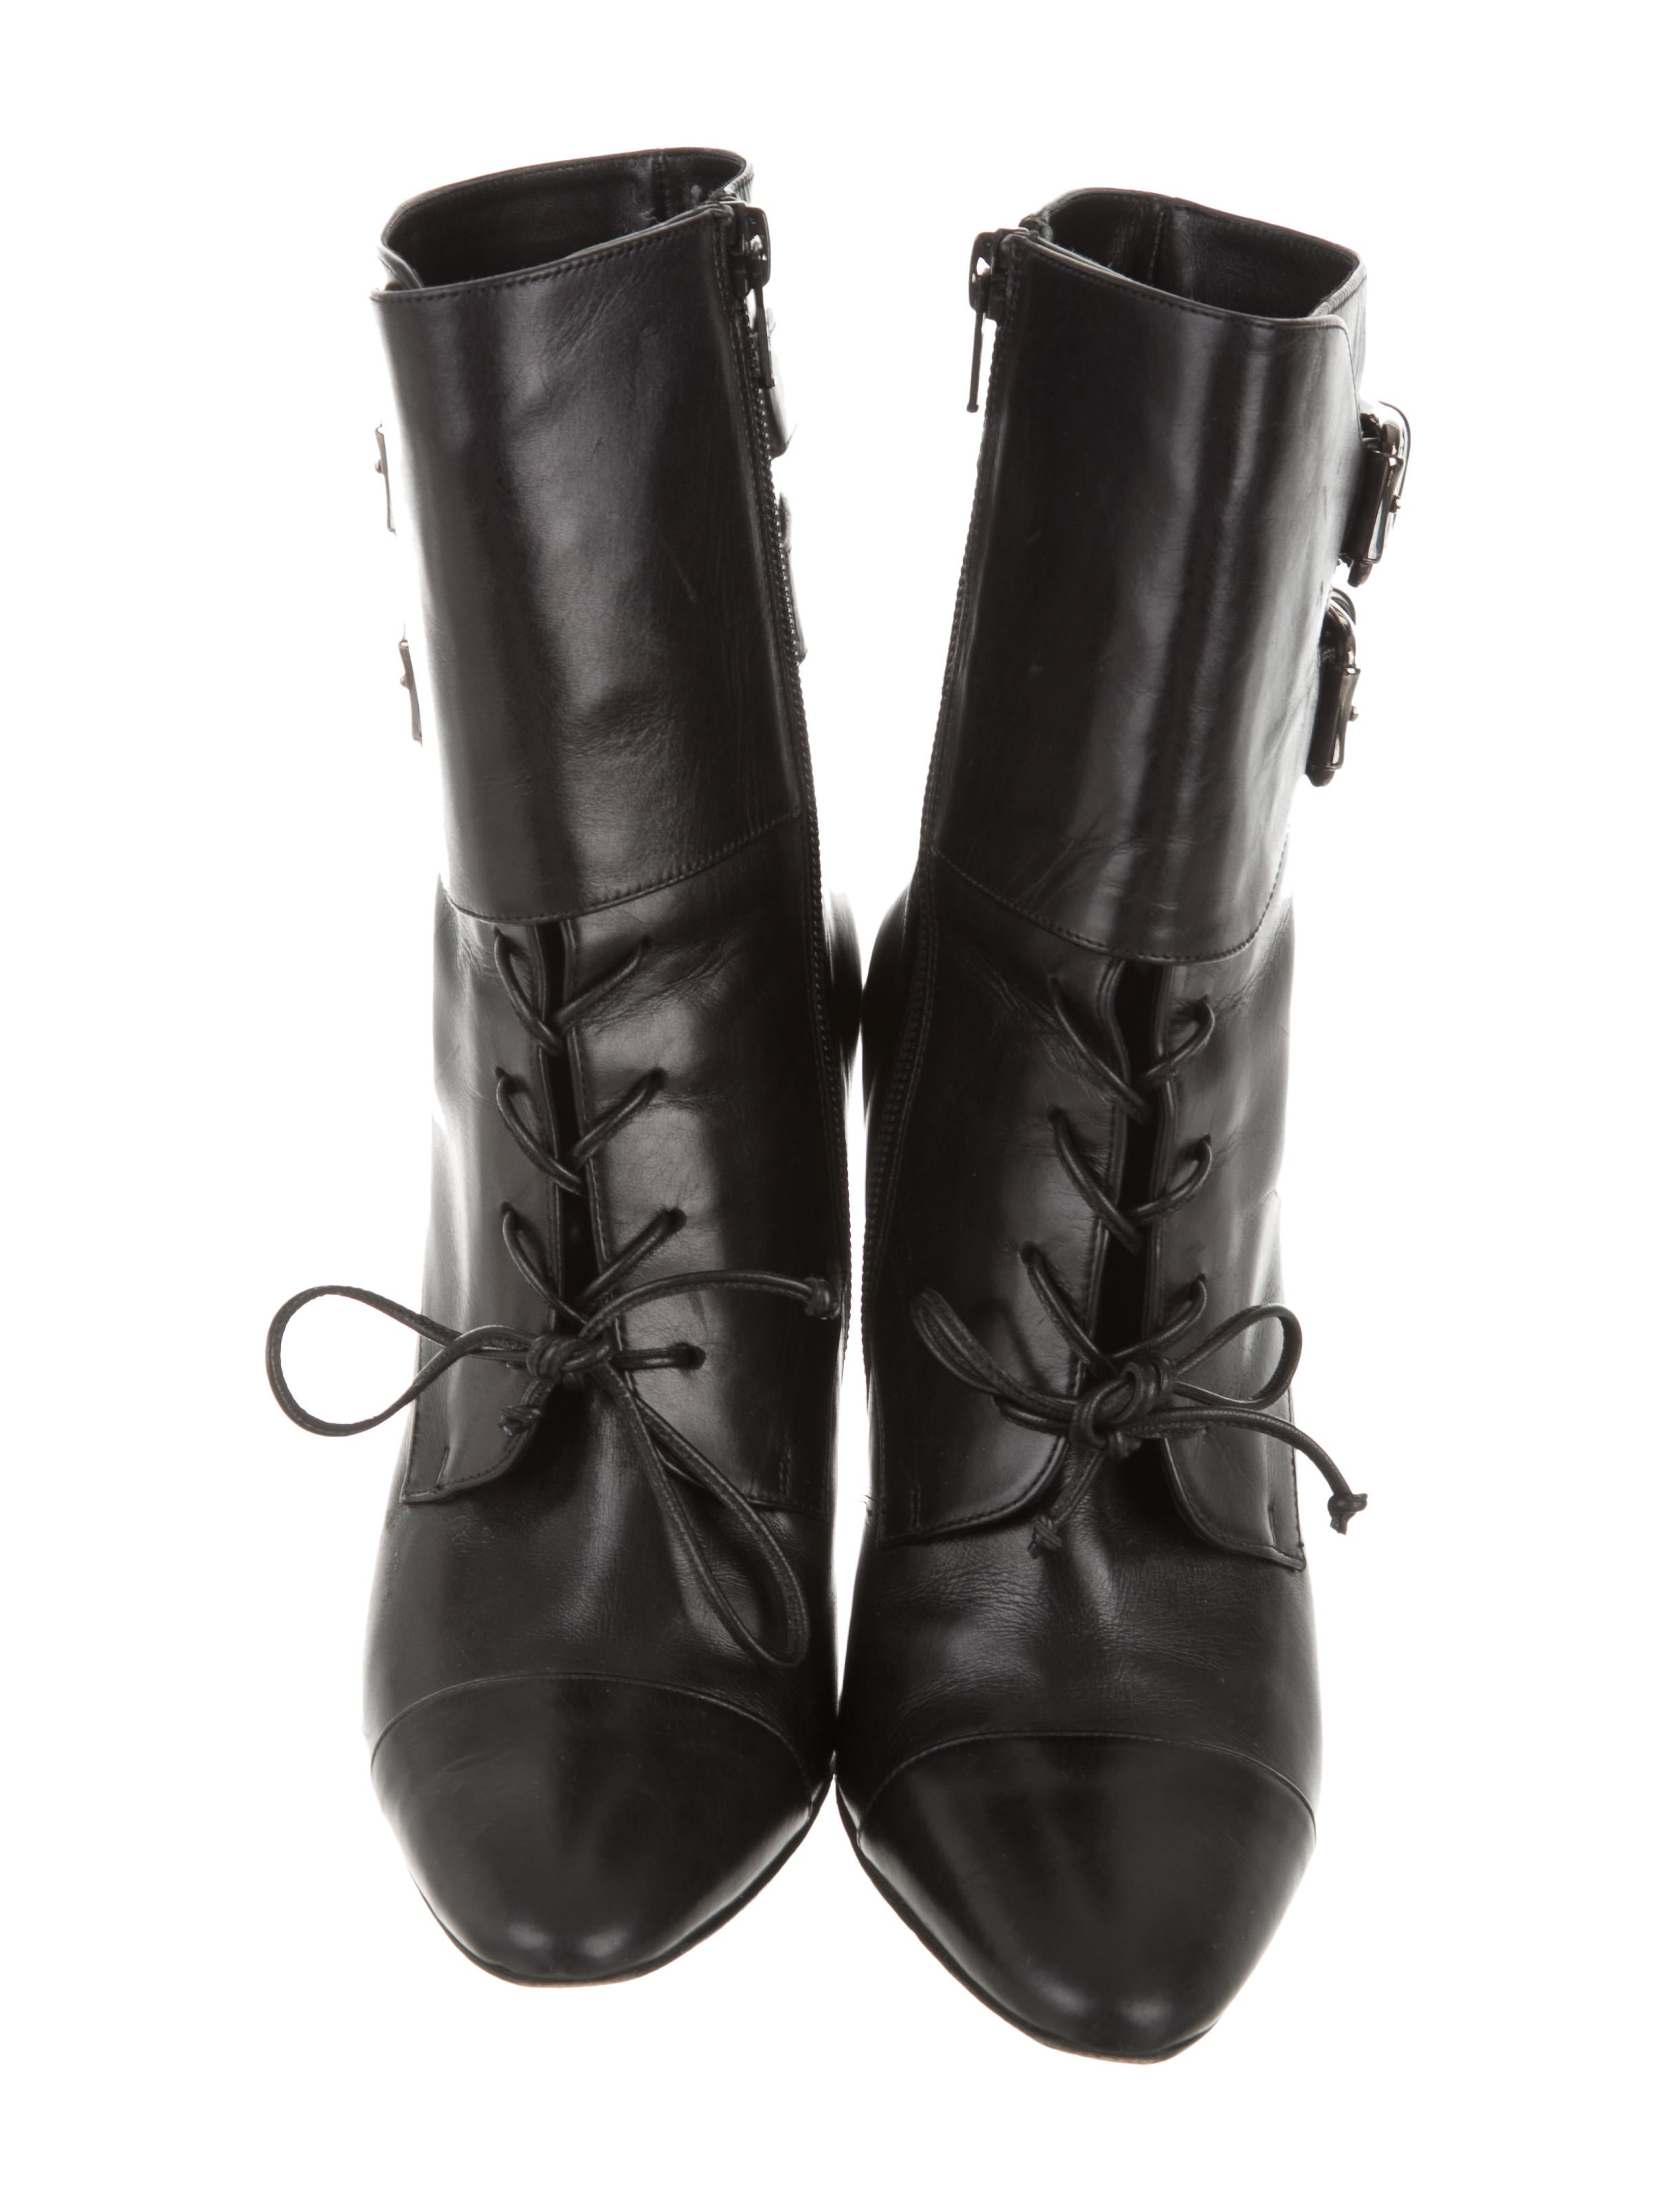 Manolo Blahnik Leather Lace-Up Ankle Boots - Shoes ...